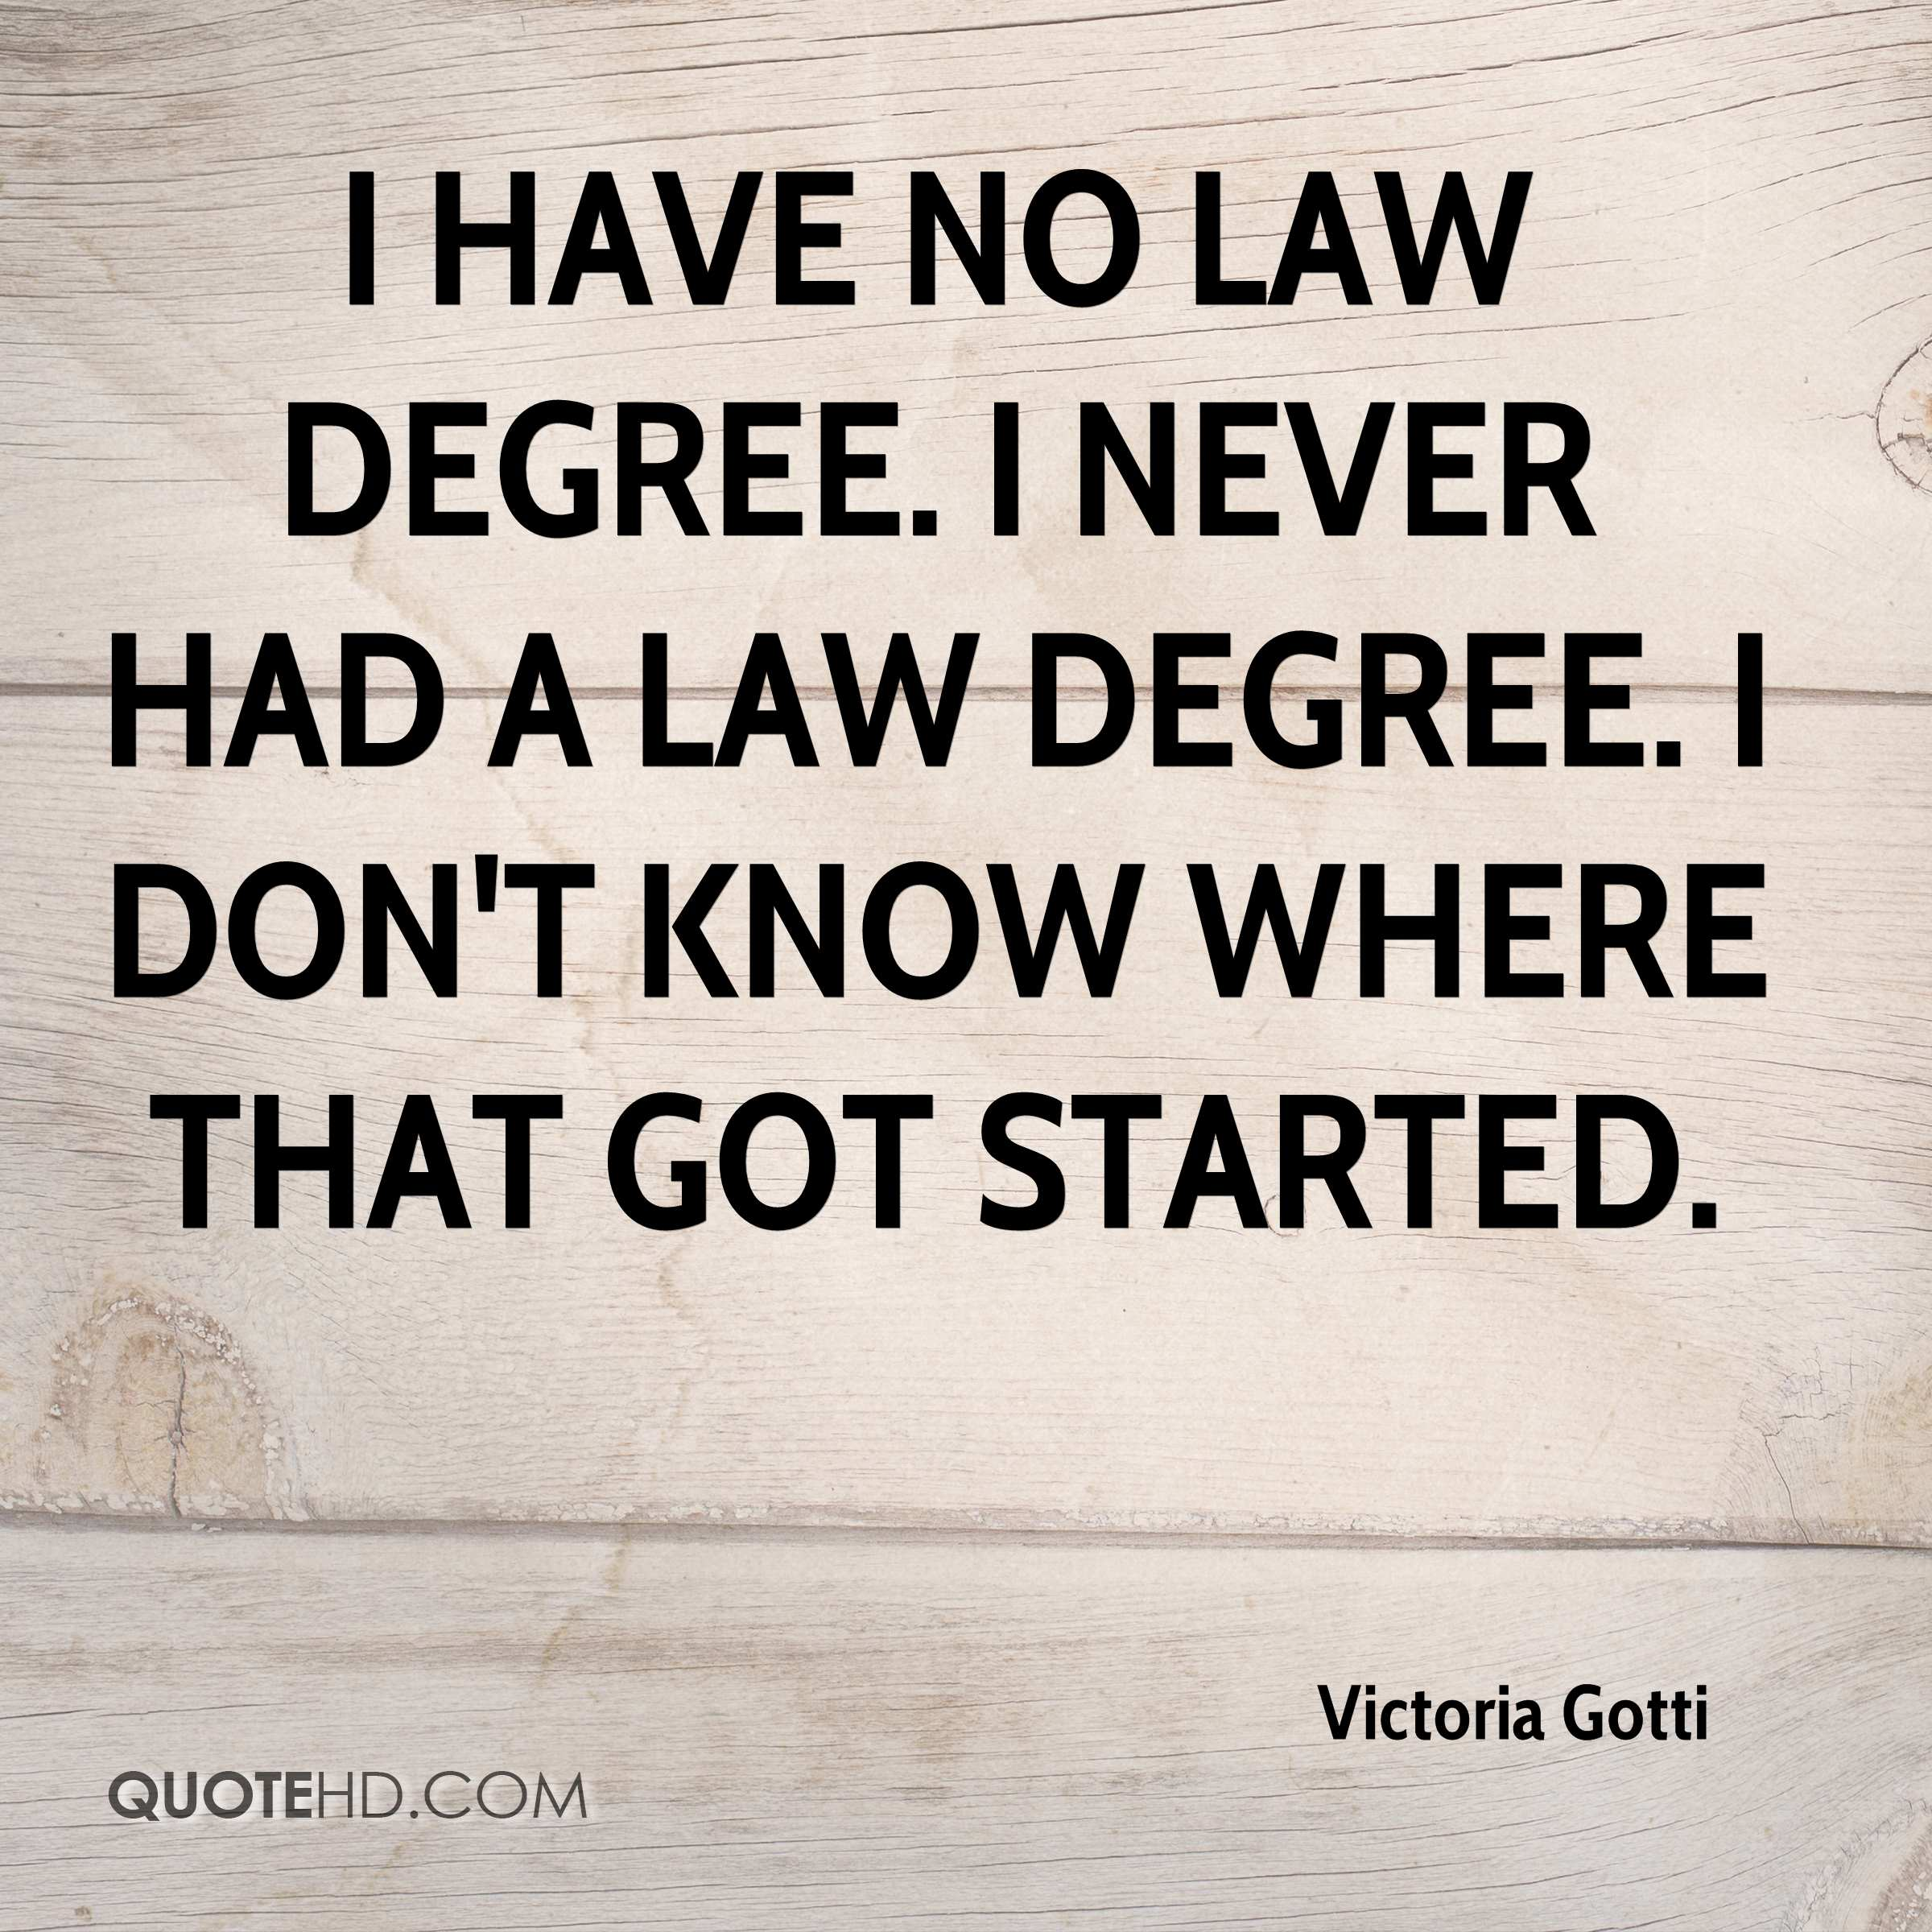 I have no law degree. I never had a law degree. I don't know where that got started.